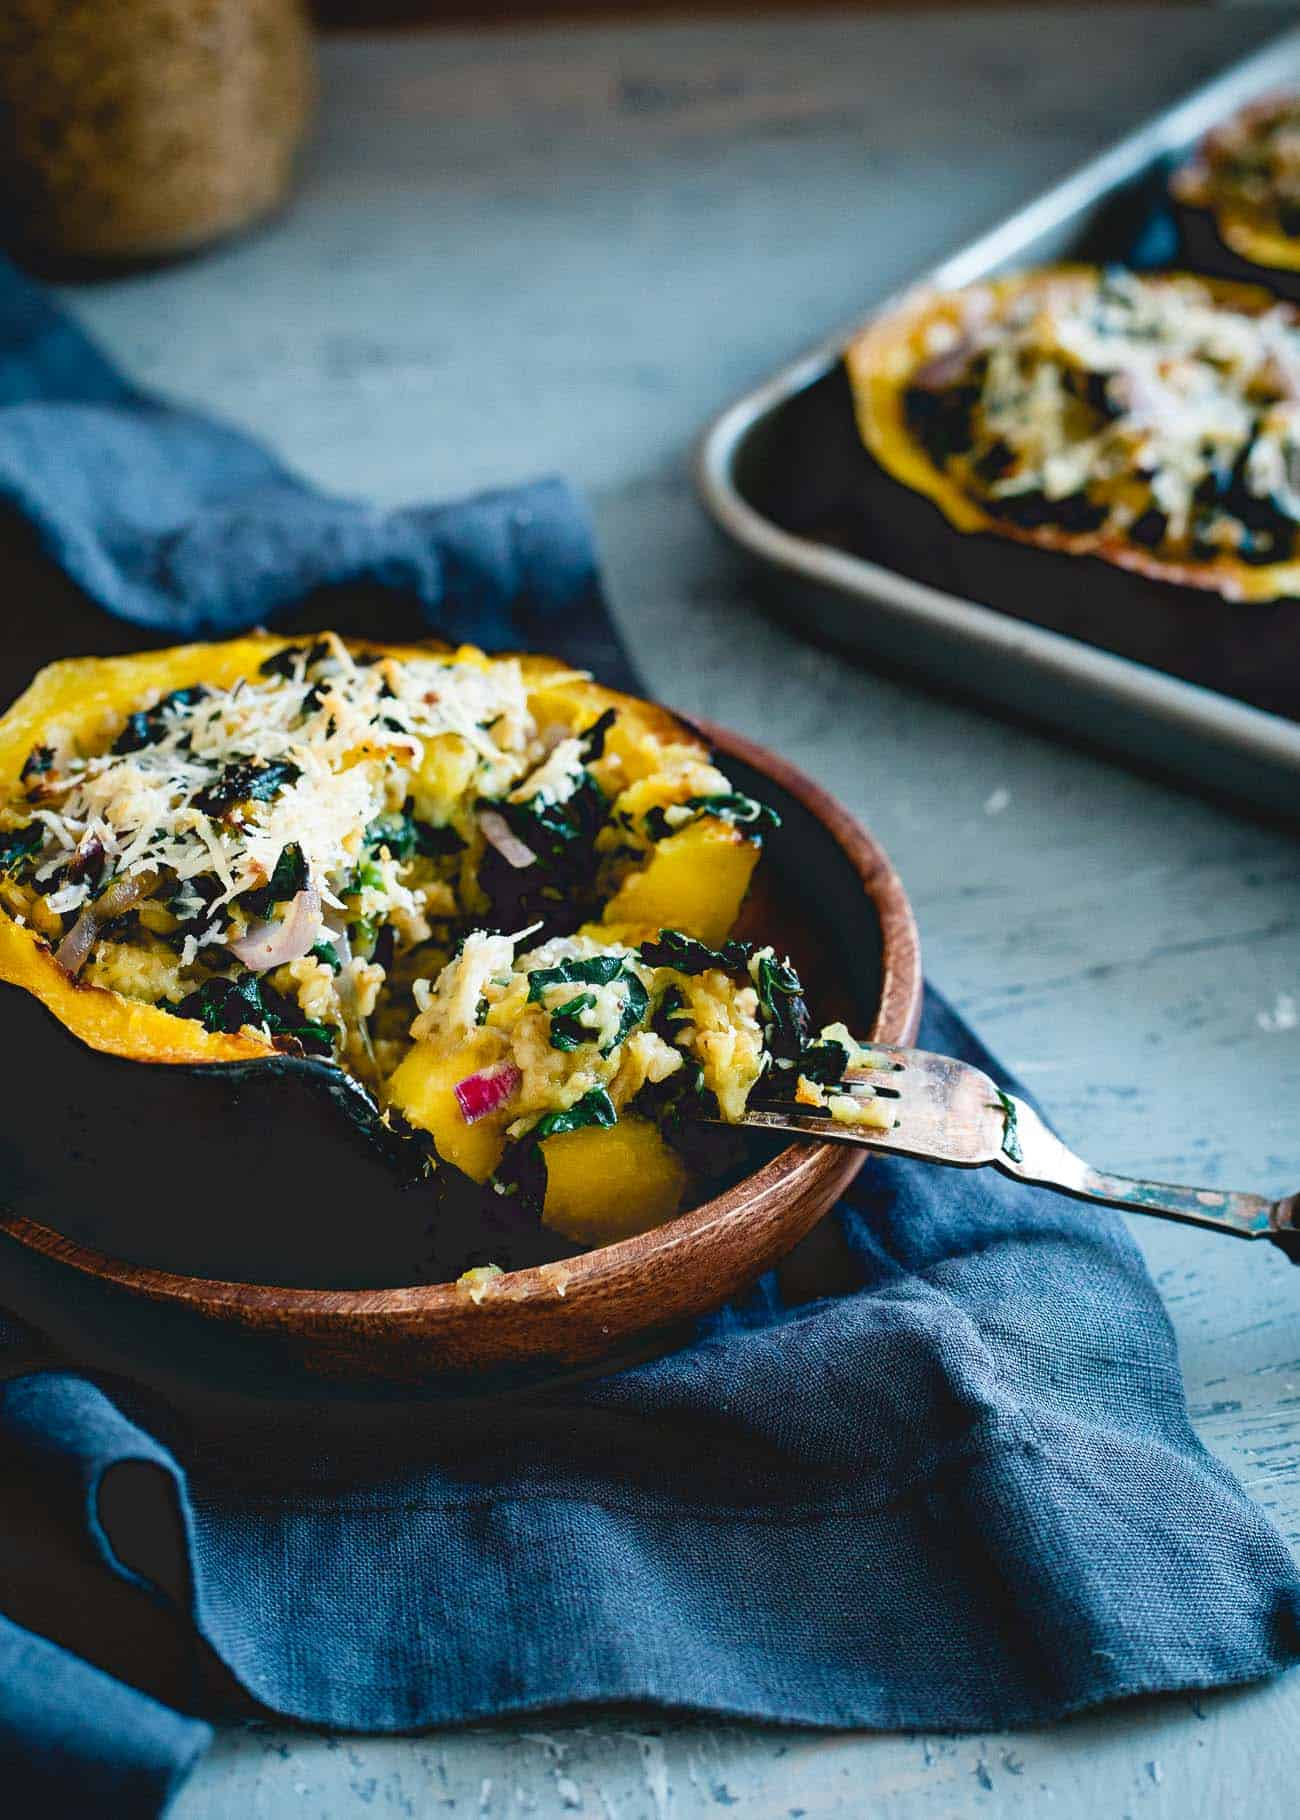 Cheesy, hearty and packed with healthy superfoods and protein, these twice baked acorn squash are a must for your fall dinner table!